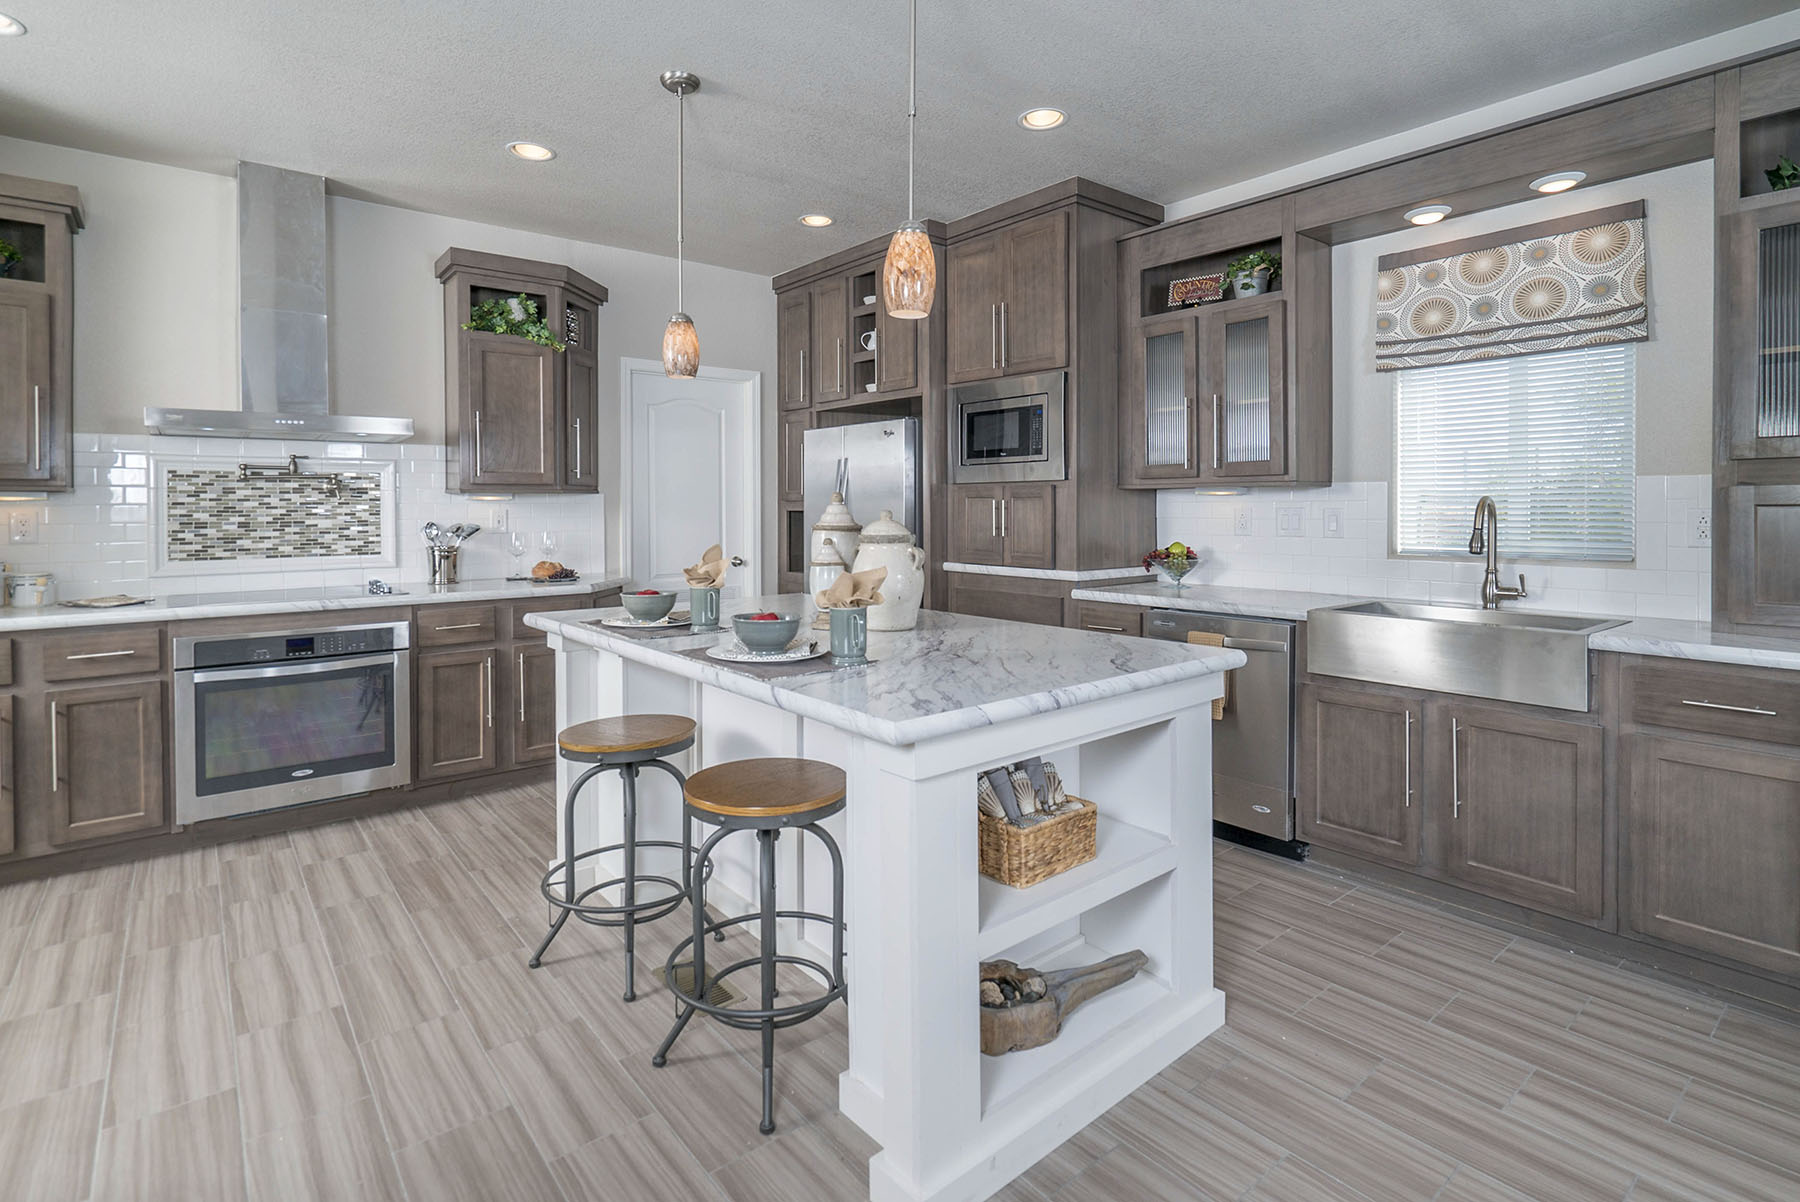 Gallery Quality Home Center: ultimate kitchens